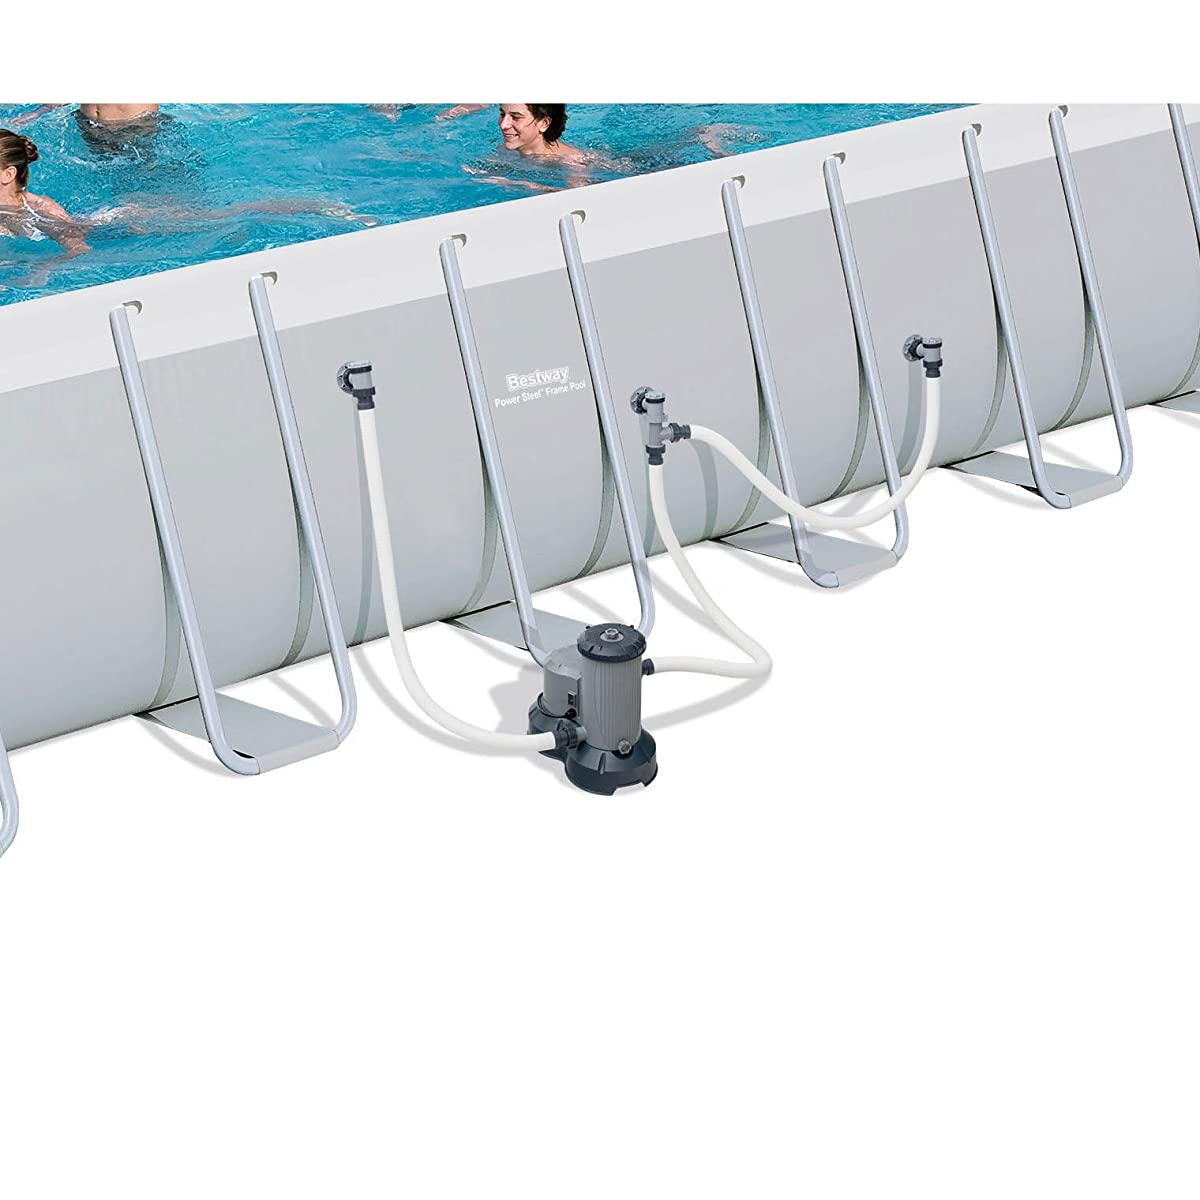 Bestway 24x12x52 Rectangular Frame Above Ground Swimming Pool Set | 56542E